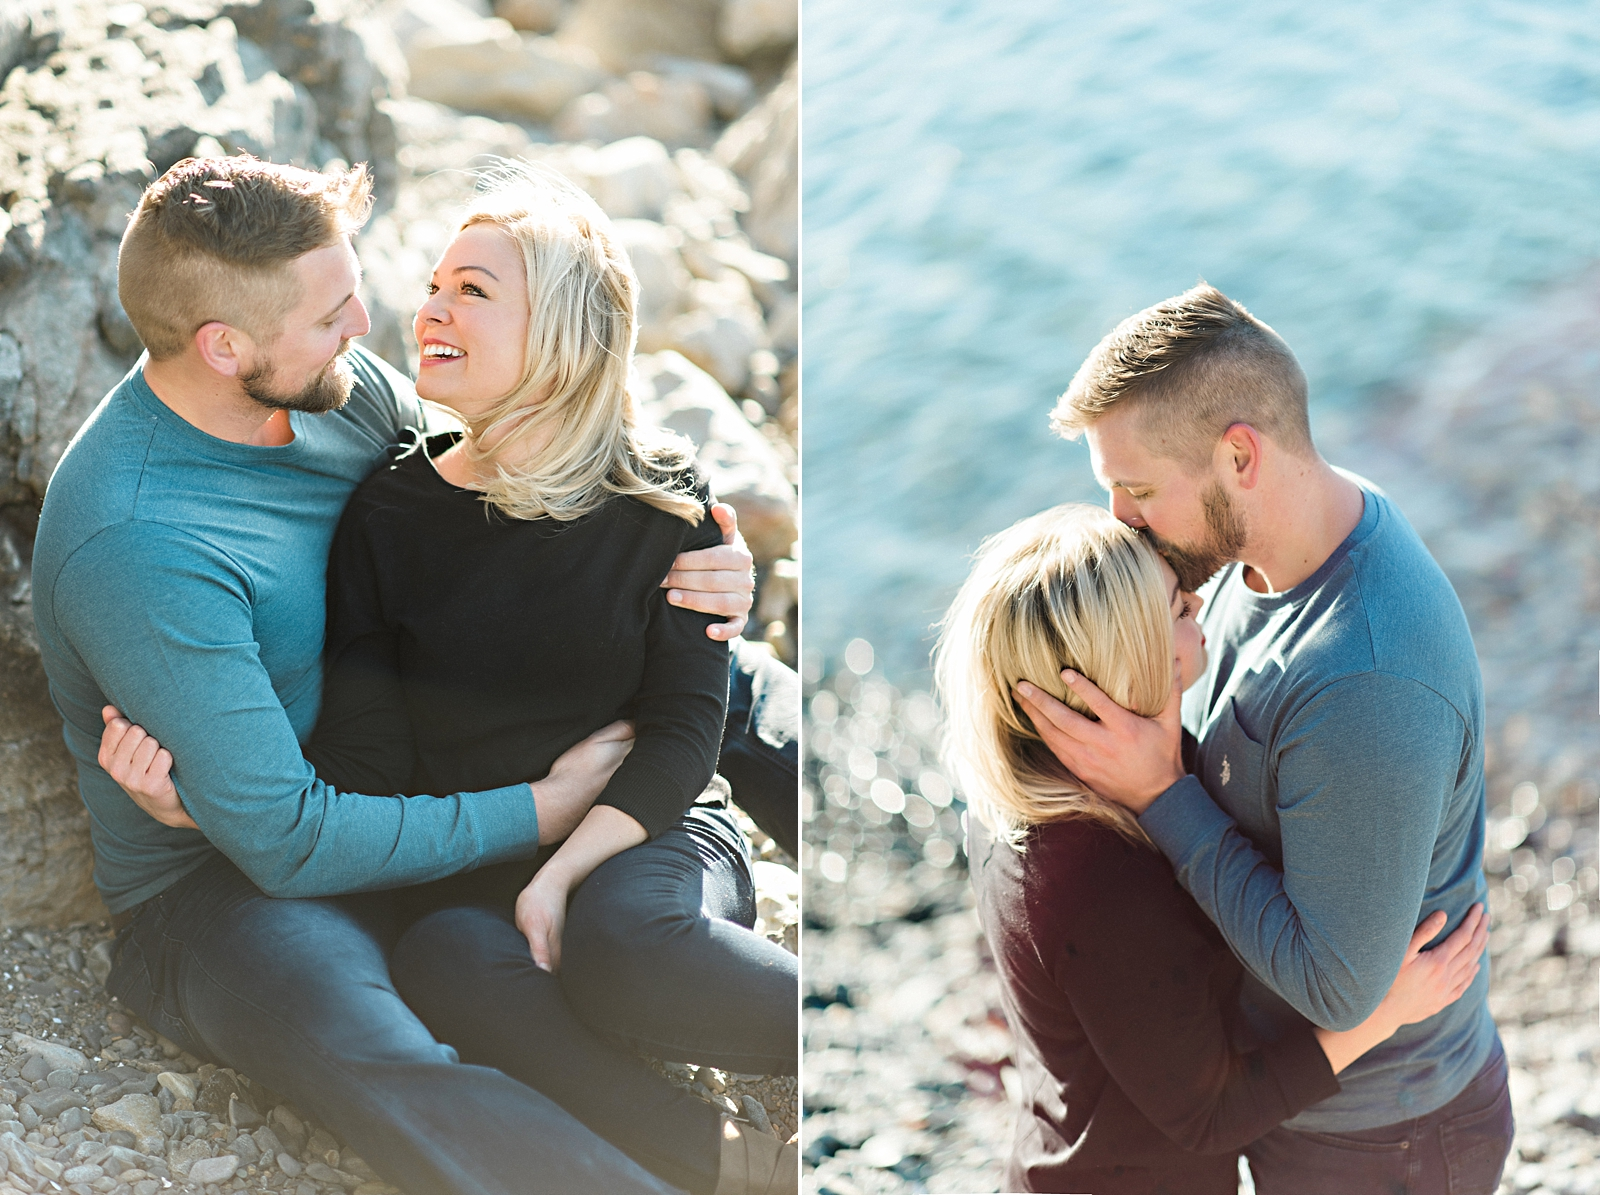 Halifax-Wedding-Photographer_Rhea&Craig_Halifax Engagement Photography_002.jpg